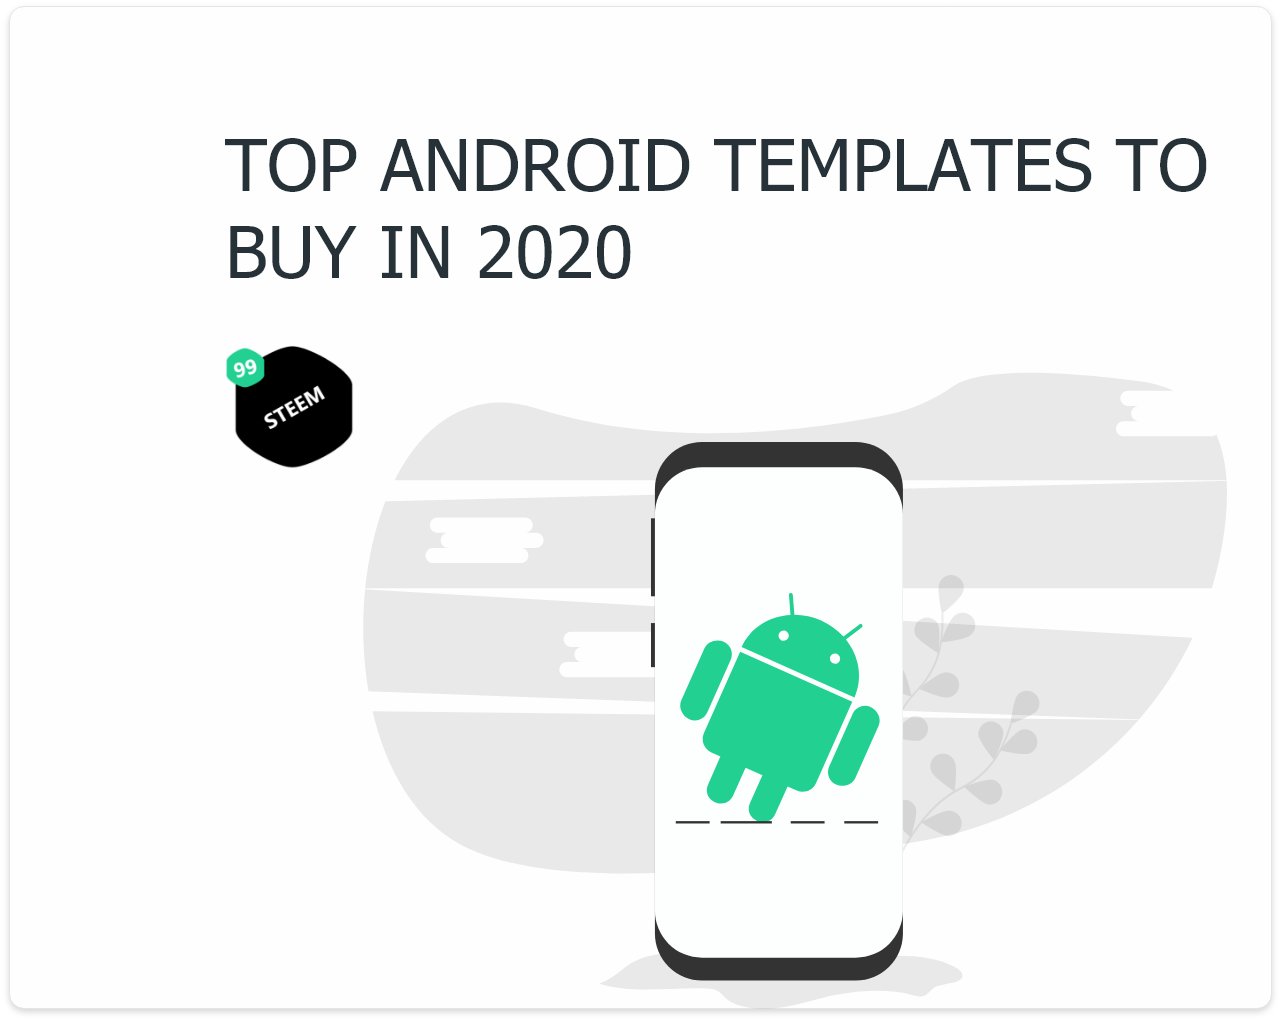 Top Android Application template to buy in 2020 - 99steem